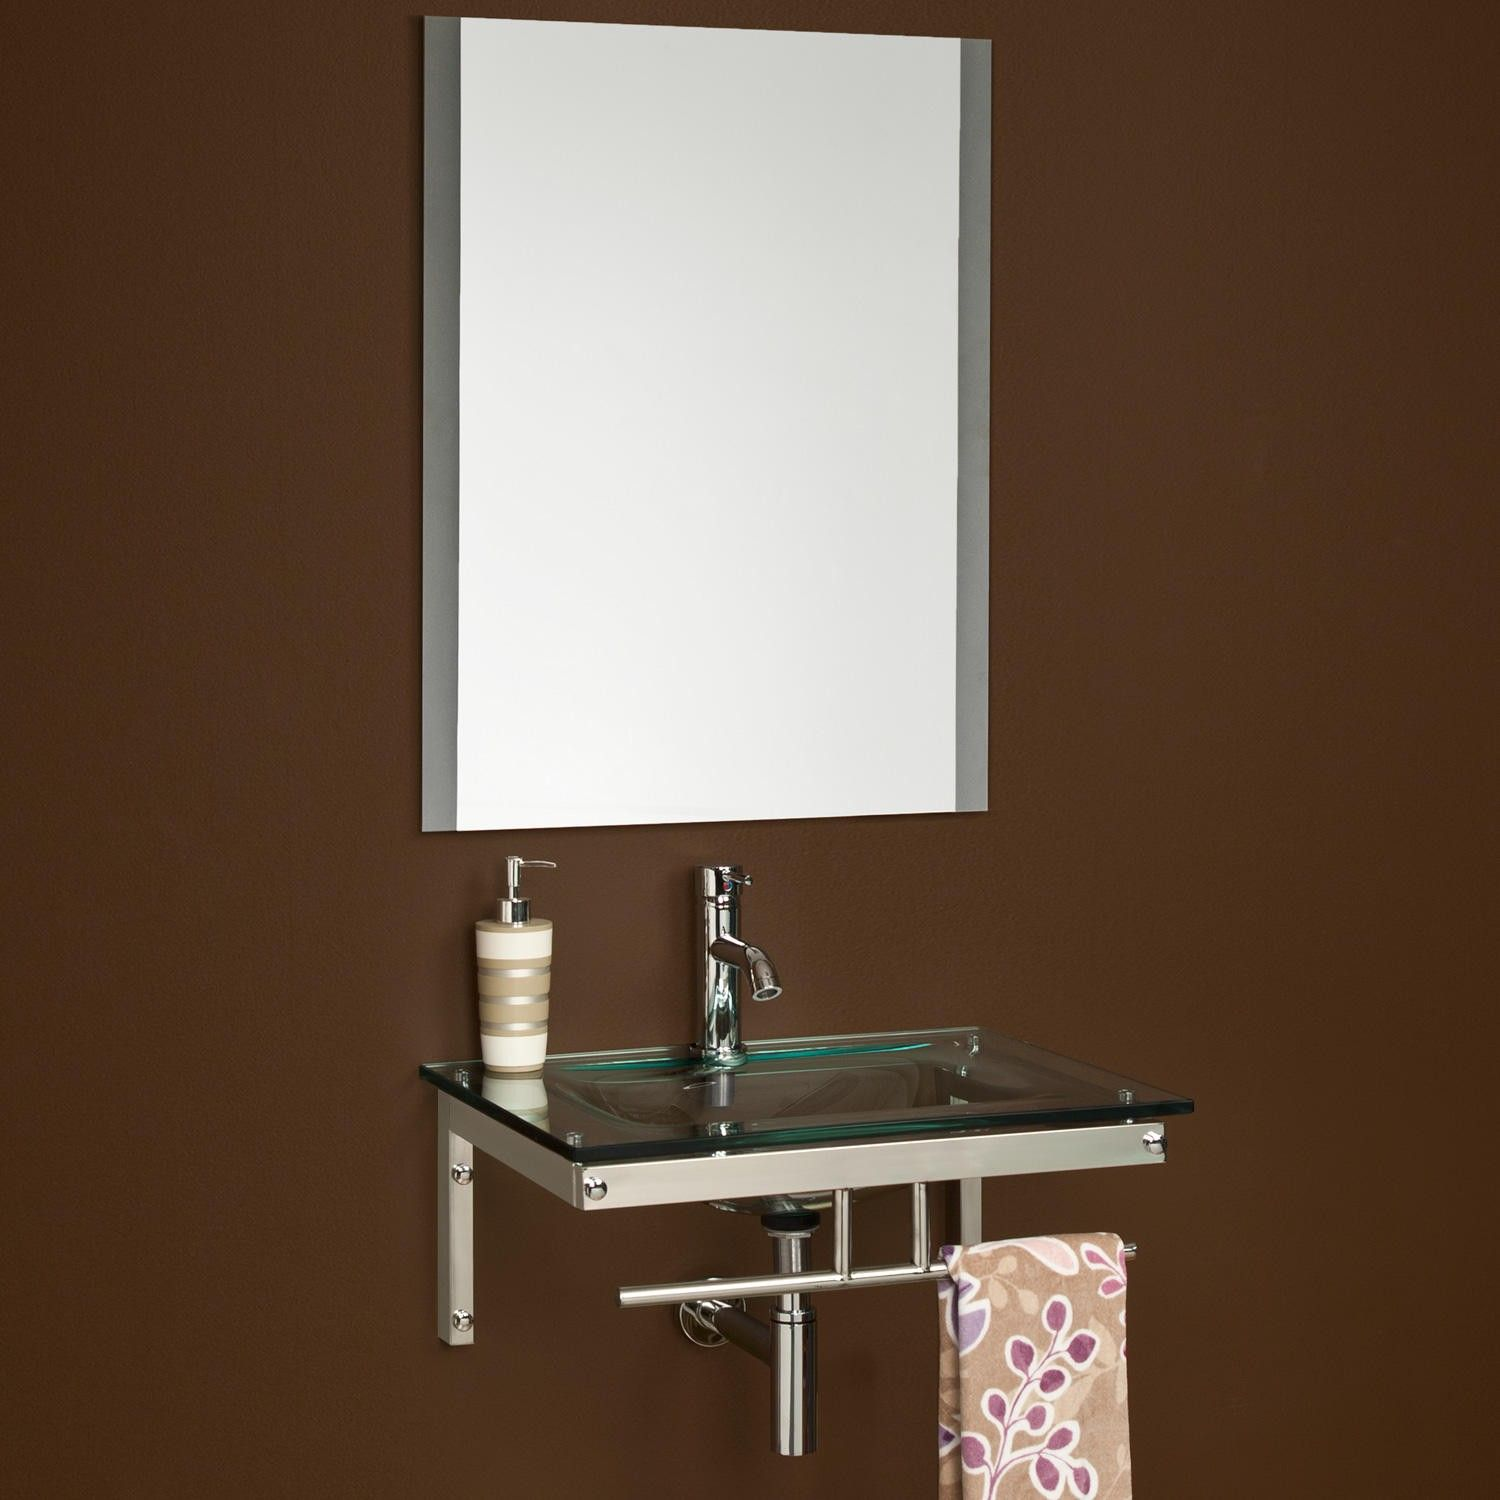 Benton Wall Mount Glass Sink Bathroom Mirror Wall Bedroom Mirror Wall Living Room Wall Mounted Bathroom Sinks